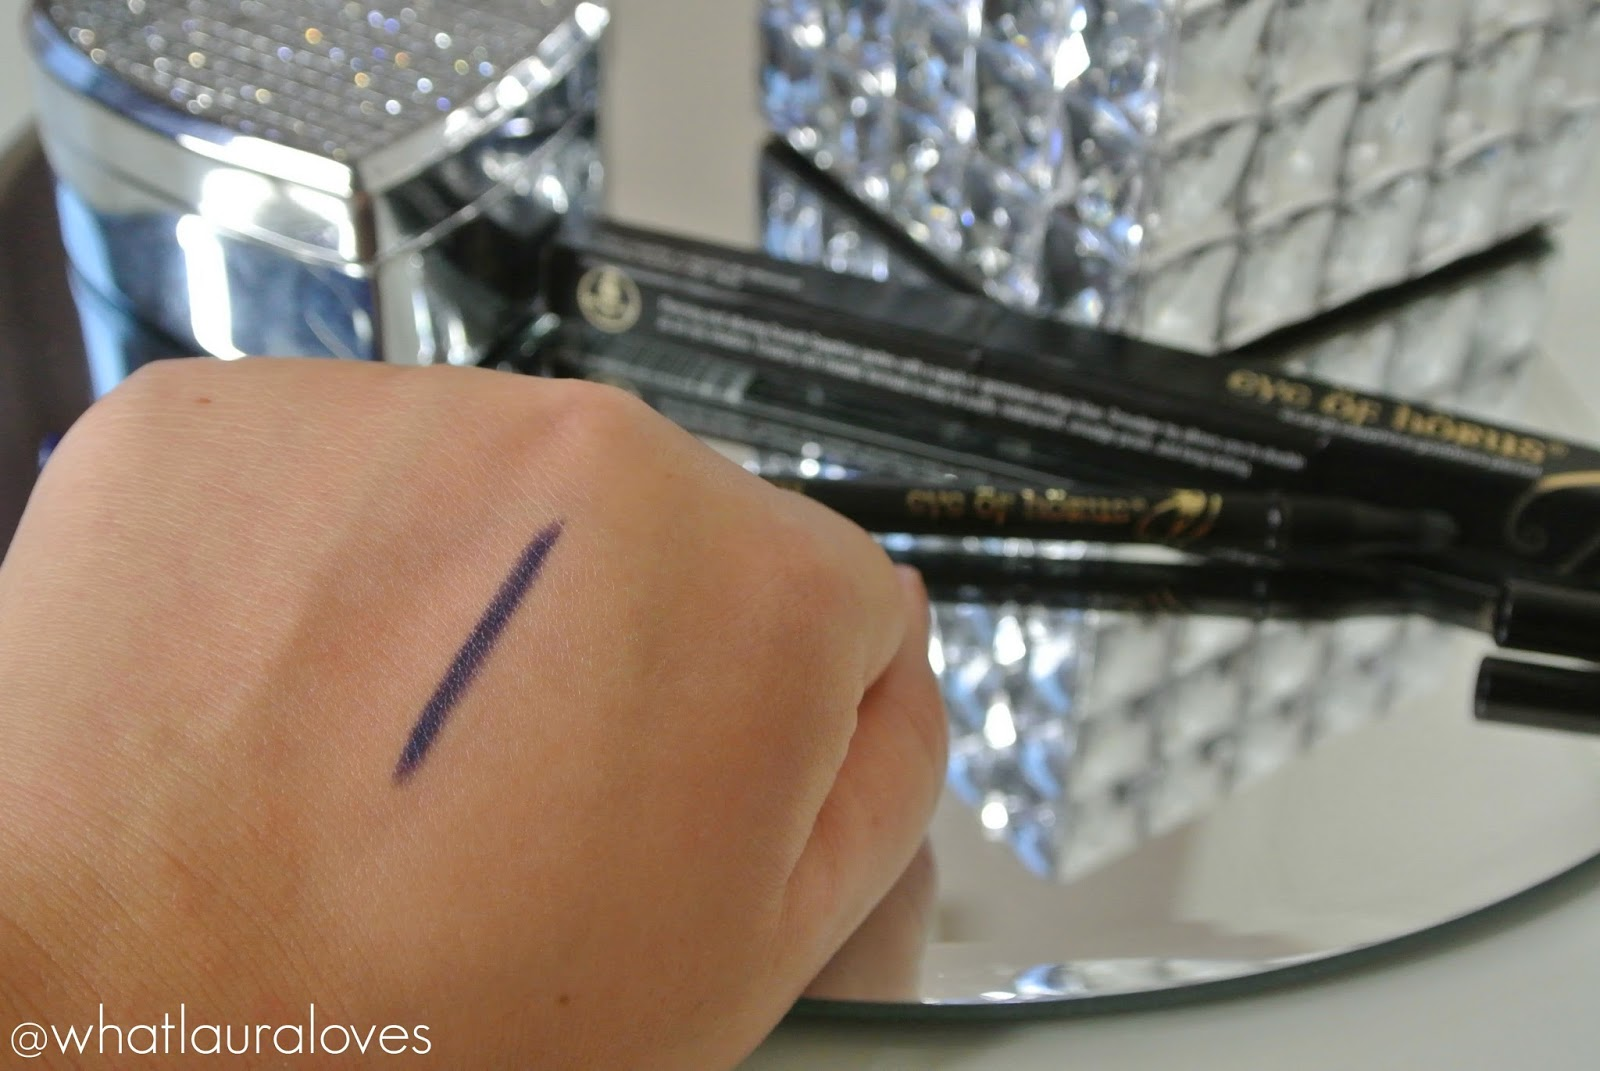 Eye of Horus Scarab Sapphire Goddess Pencil Review Indigo Eye Pencil Swatch